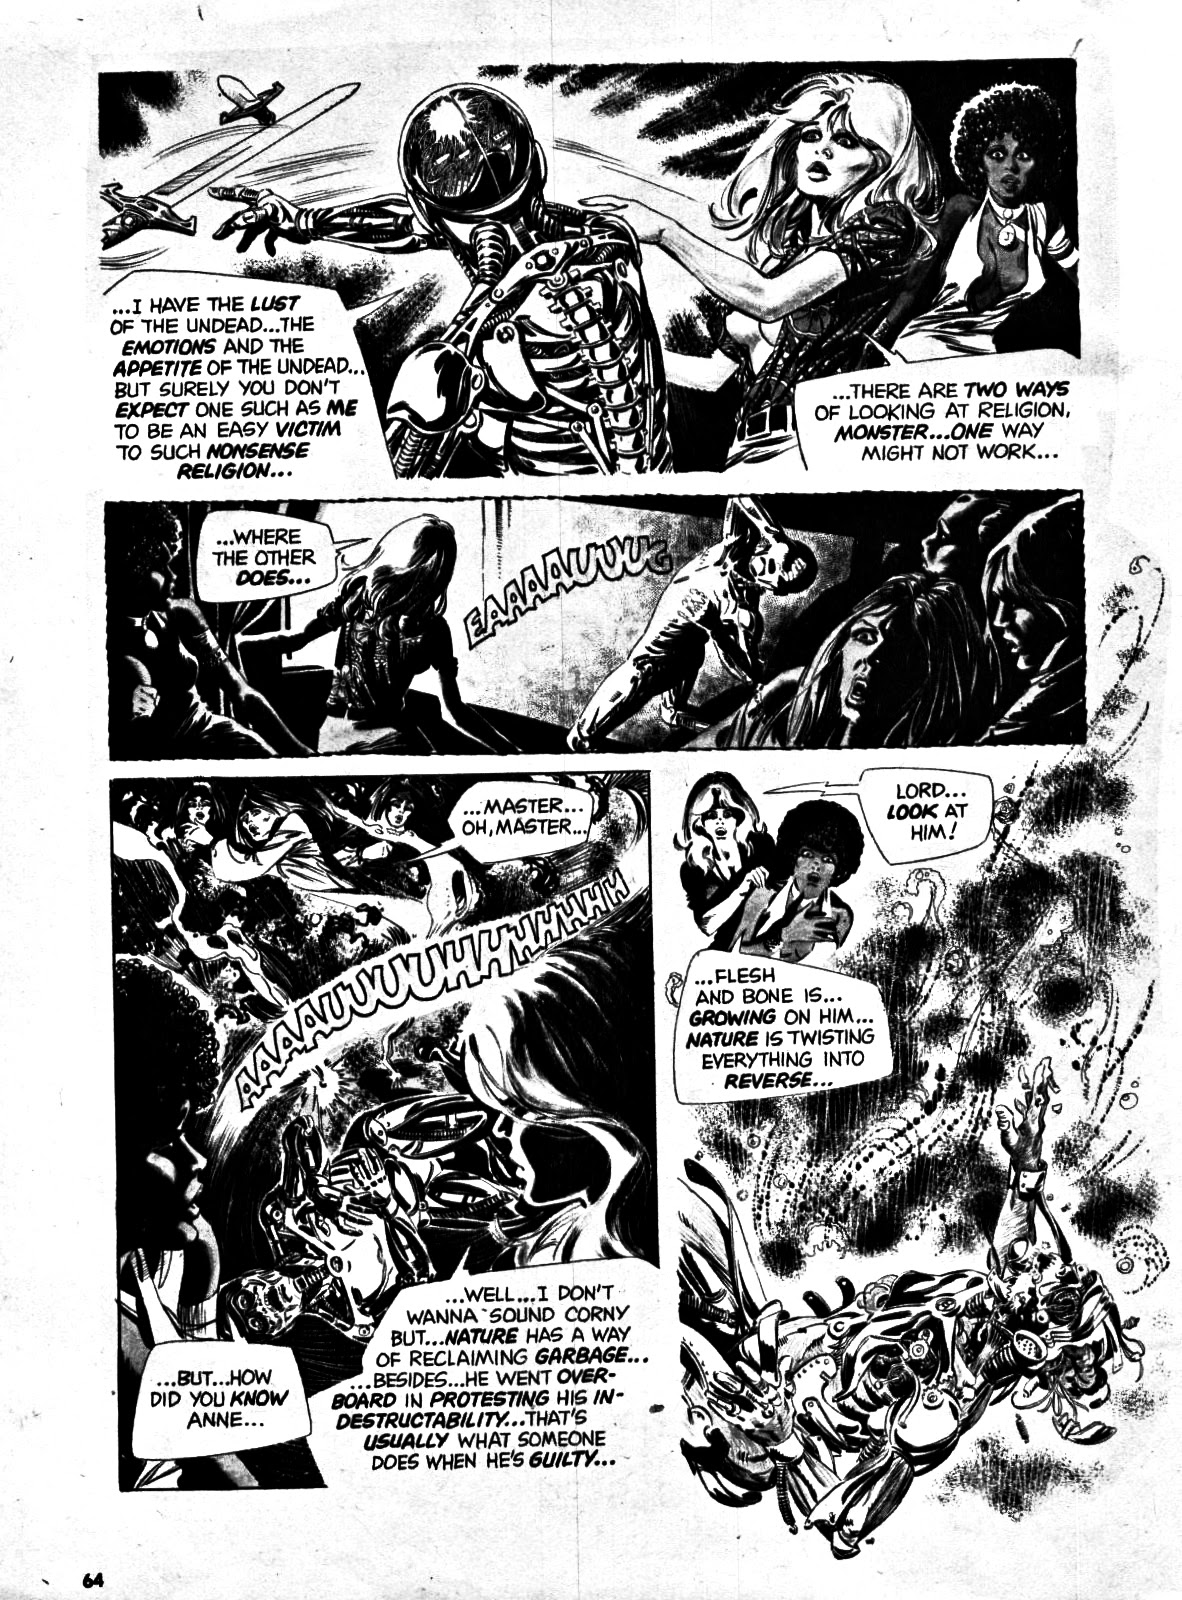 Scream (1973) issue 7 - Page 63